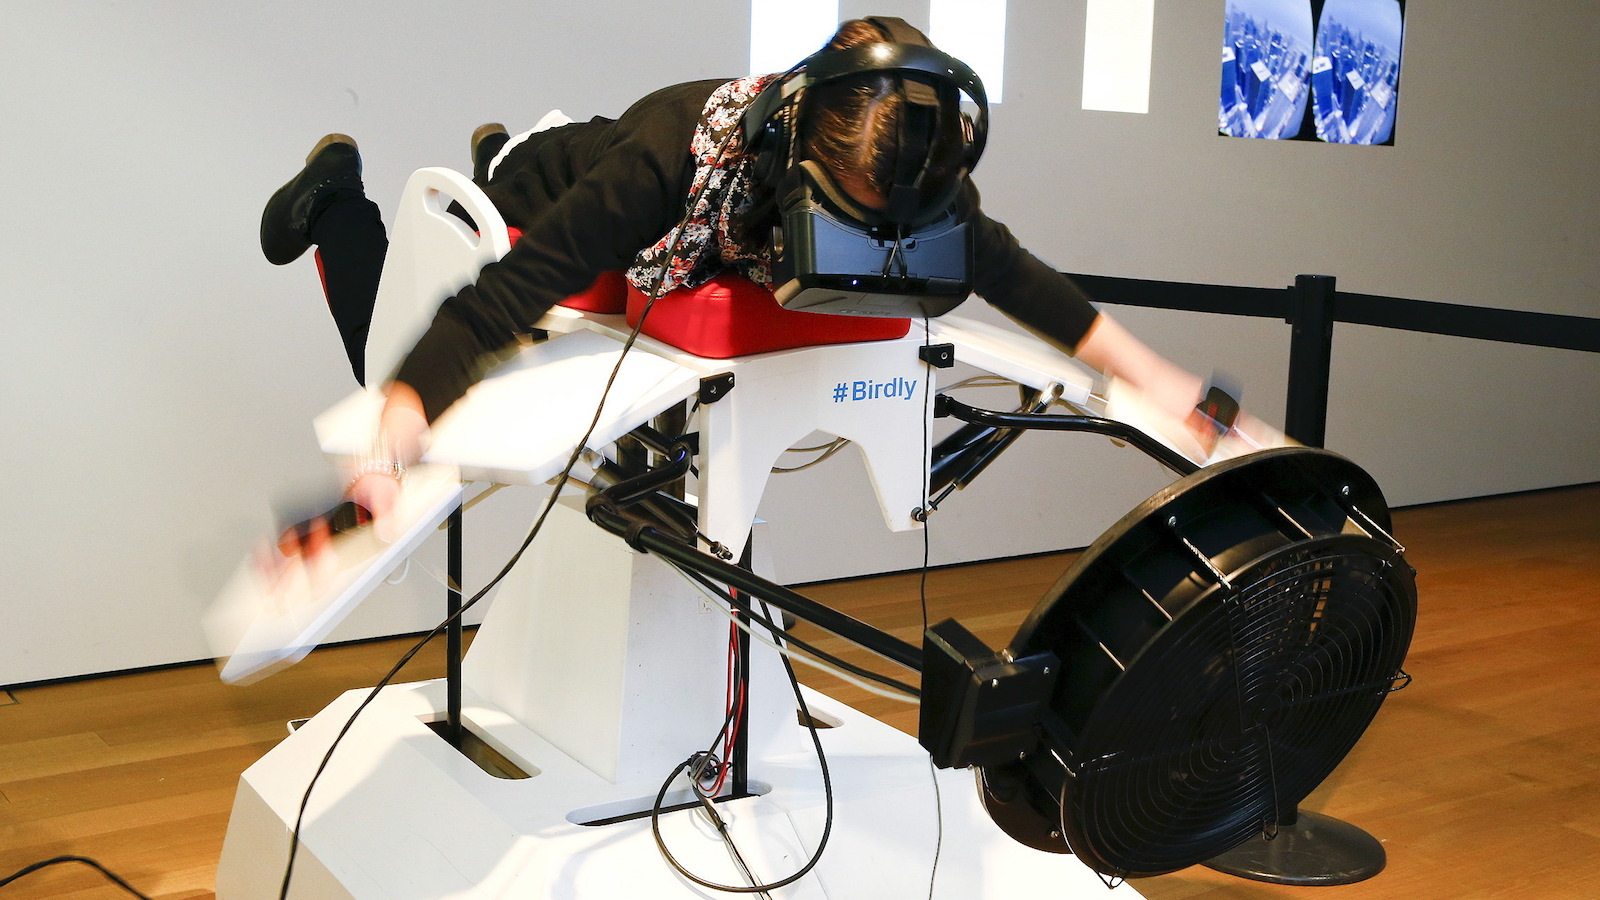 """A visitor tries the flight simulator Birdly at the exhibition """"Animated Wonderworlds"""" at Museum fuer Gestaltung (Museum for Design) in Zurich, November 17, 2015. Birdly simulates the flight of a red kite over New York City, controlled by the entire body of the user. The flight simulator was developed by scientists at Zurich University of the Arts. REUTERS/Arnd Wiegmann  - RTS7JXB"""